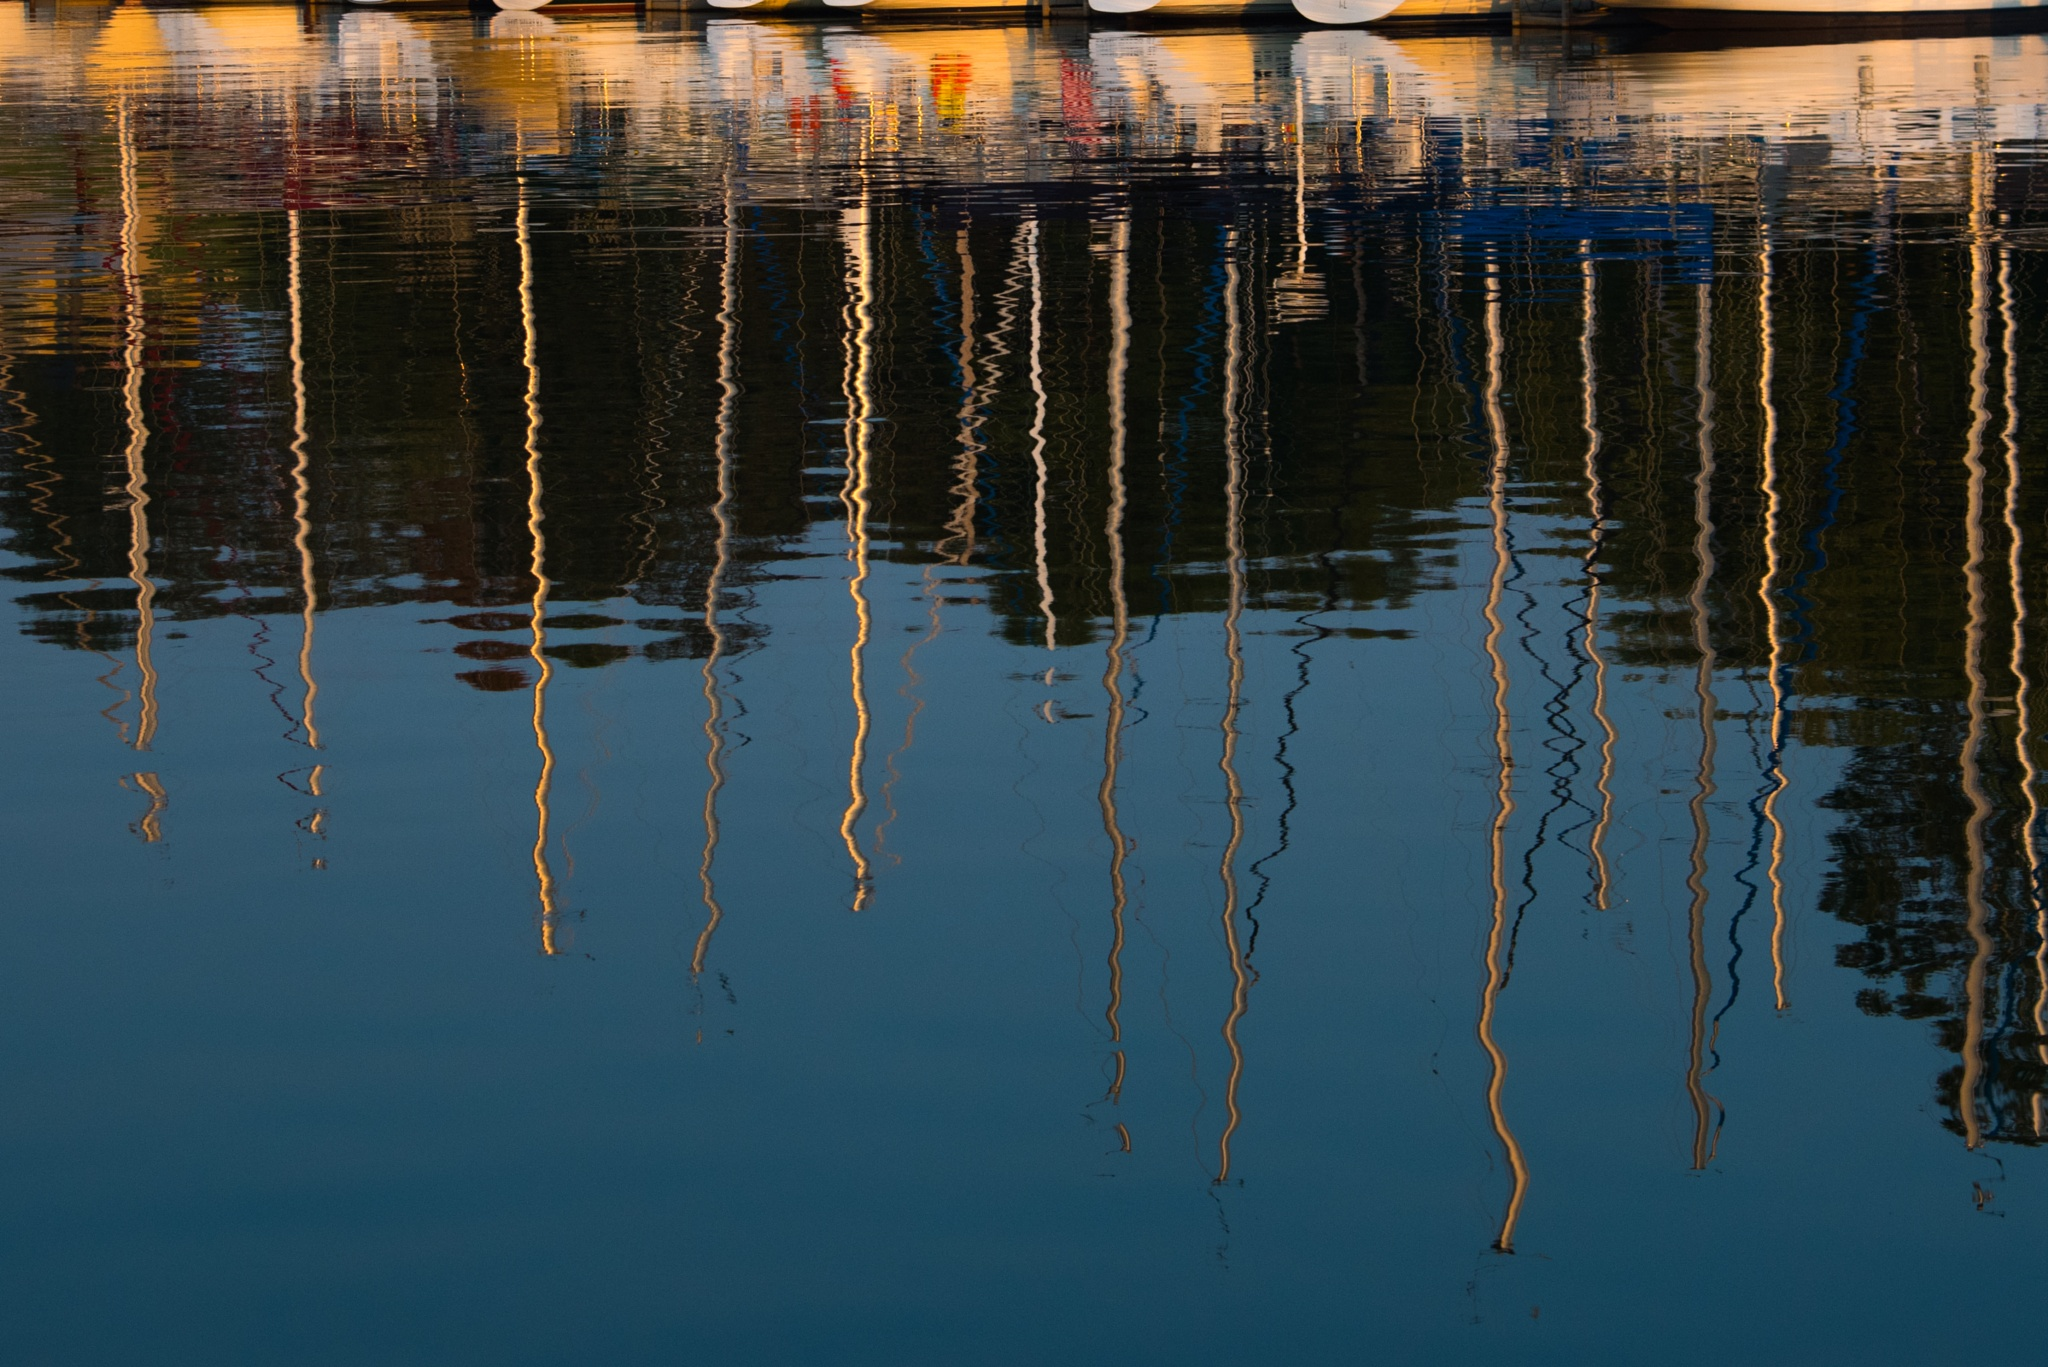 Reflections2 by Neels deConing